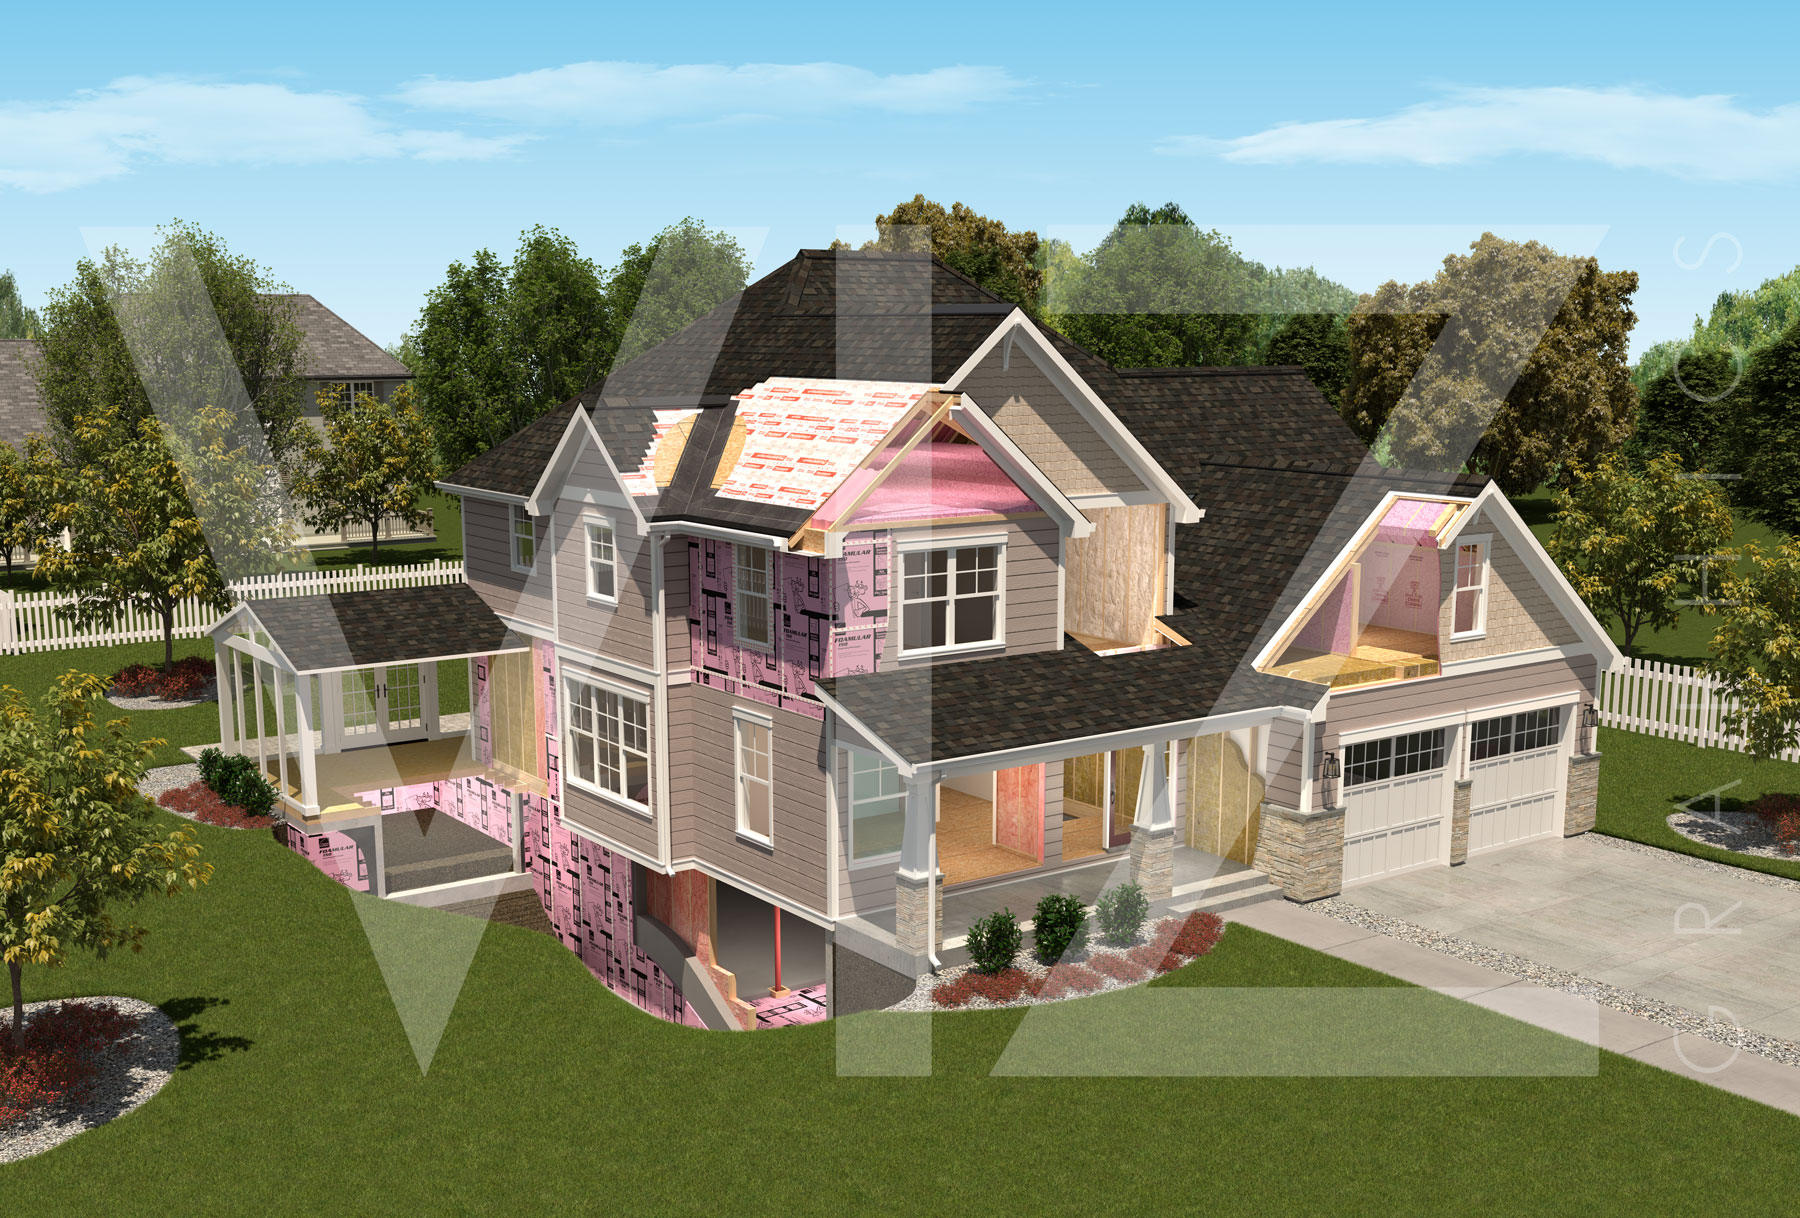 Owens-Corning-Insulation_Roofing-House-Cutaway-Rendering